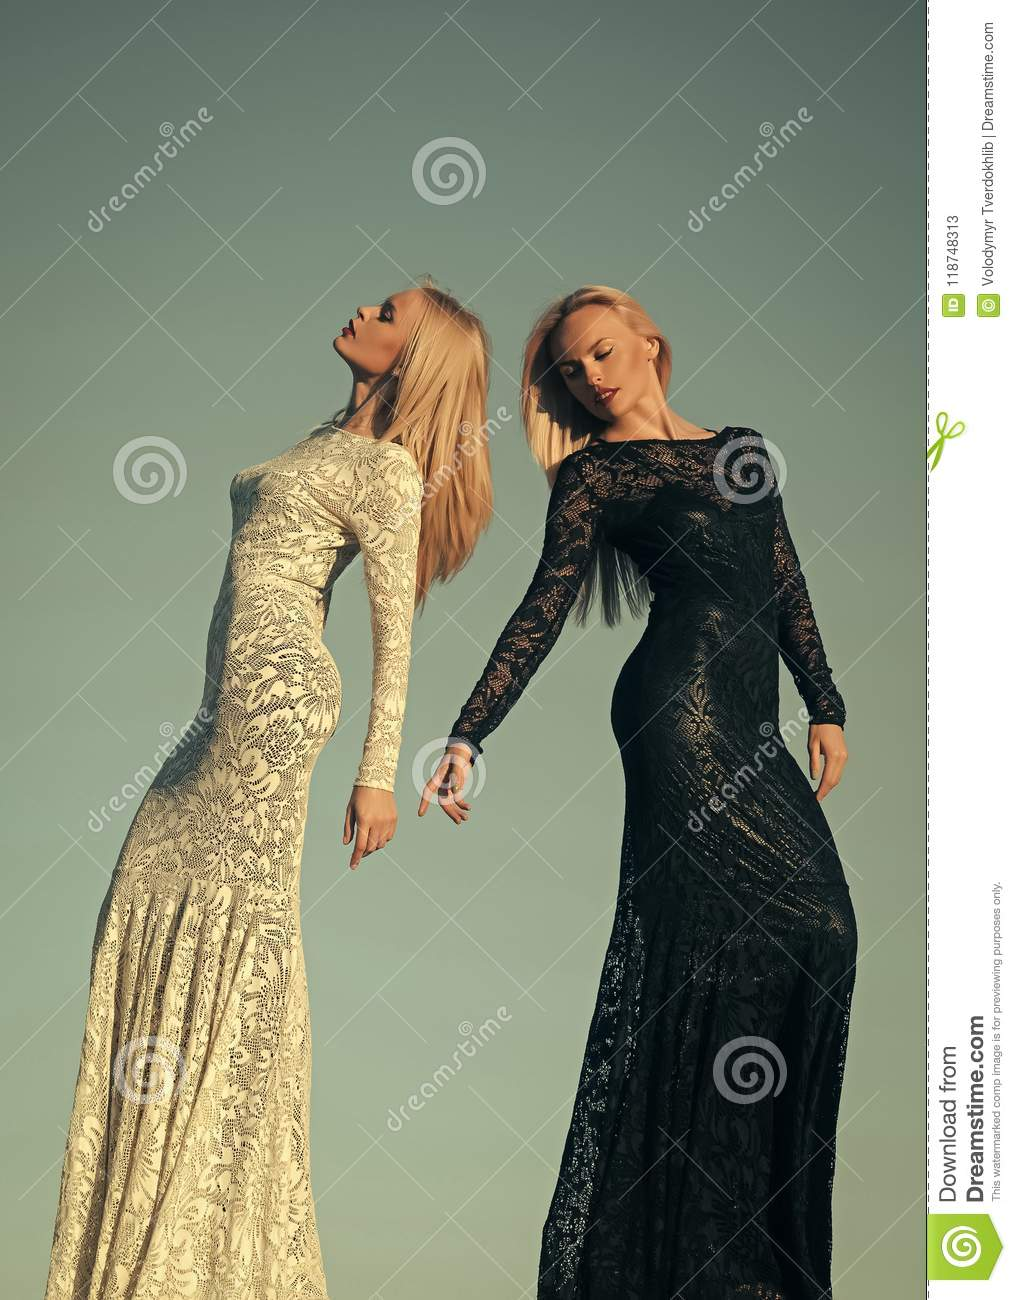 Black and white. Women wearing black and white dresses